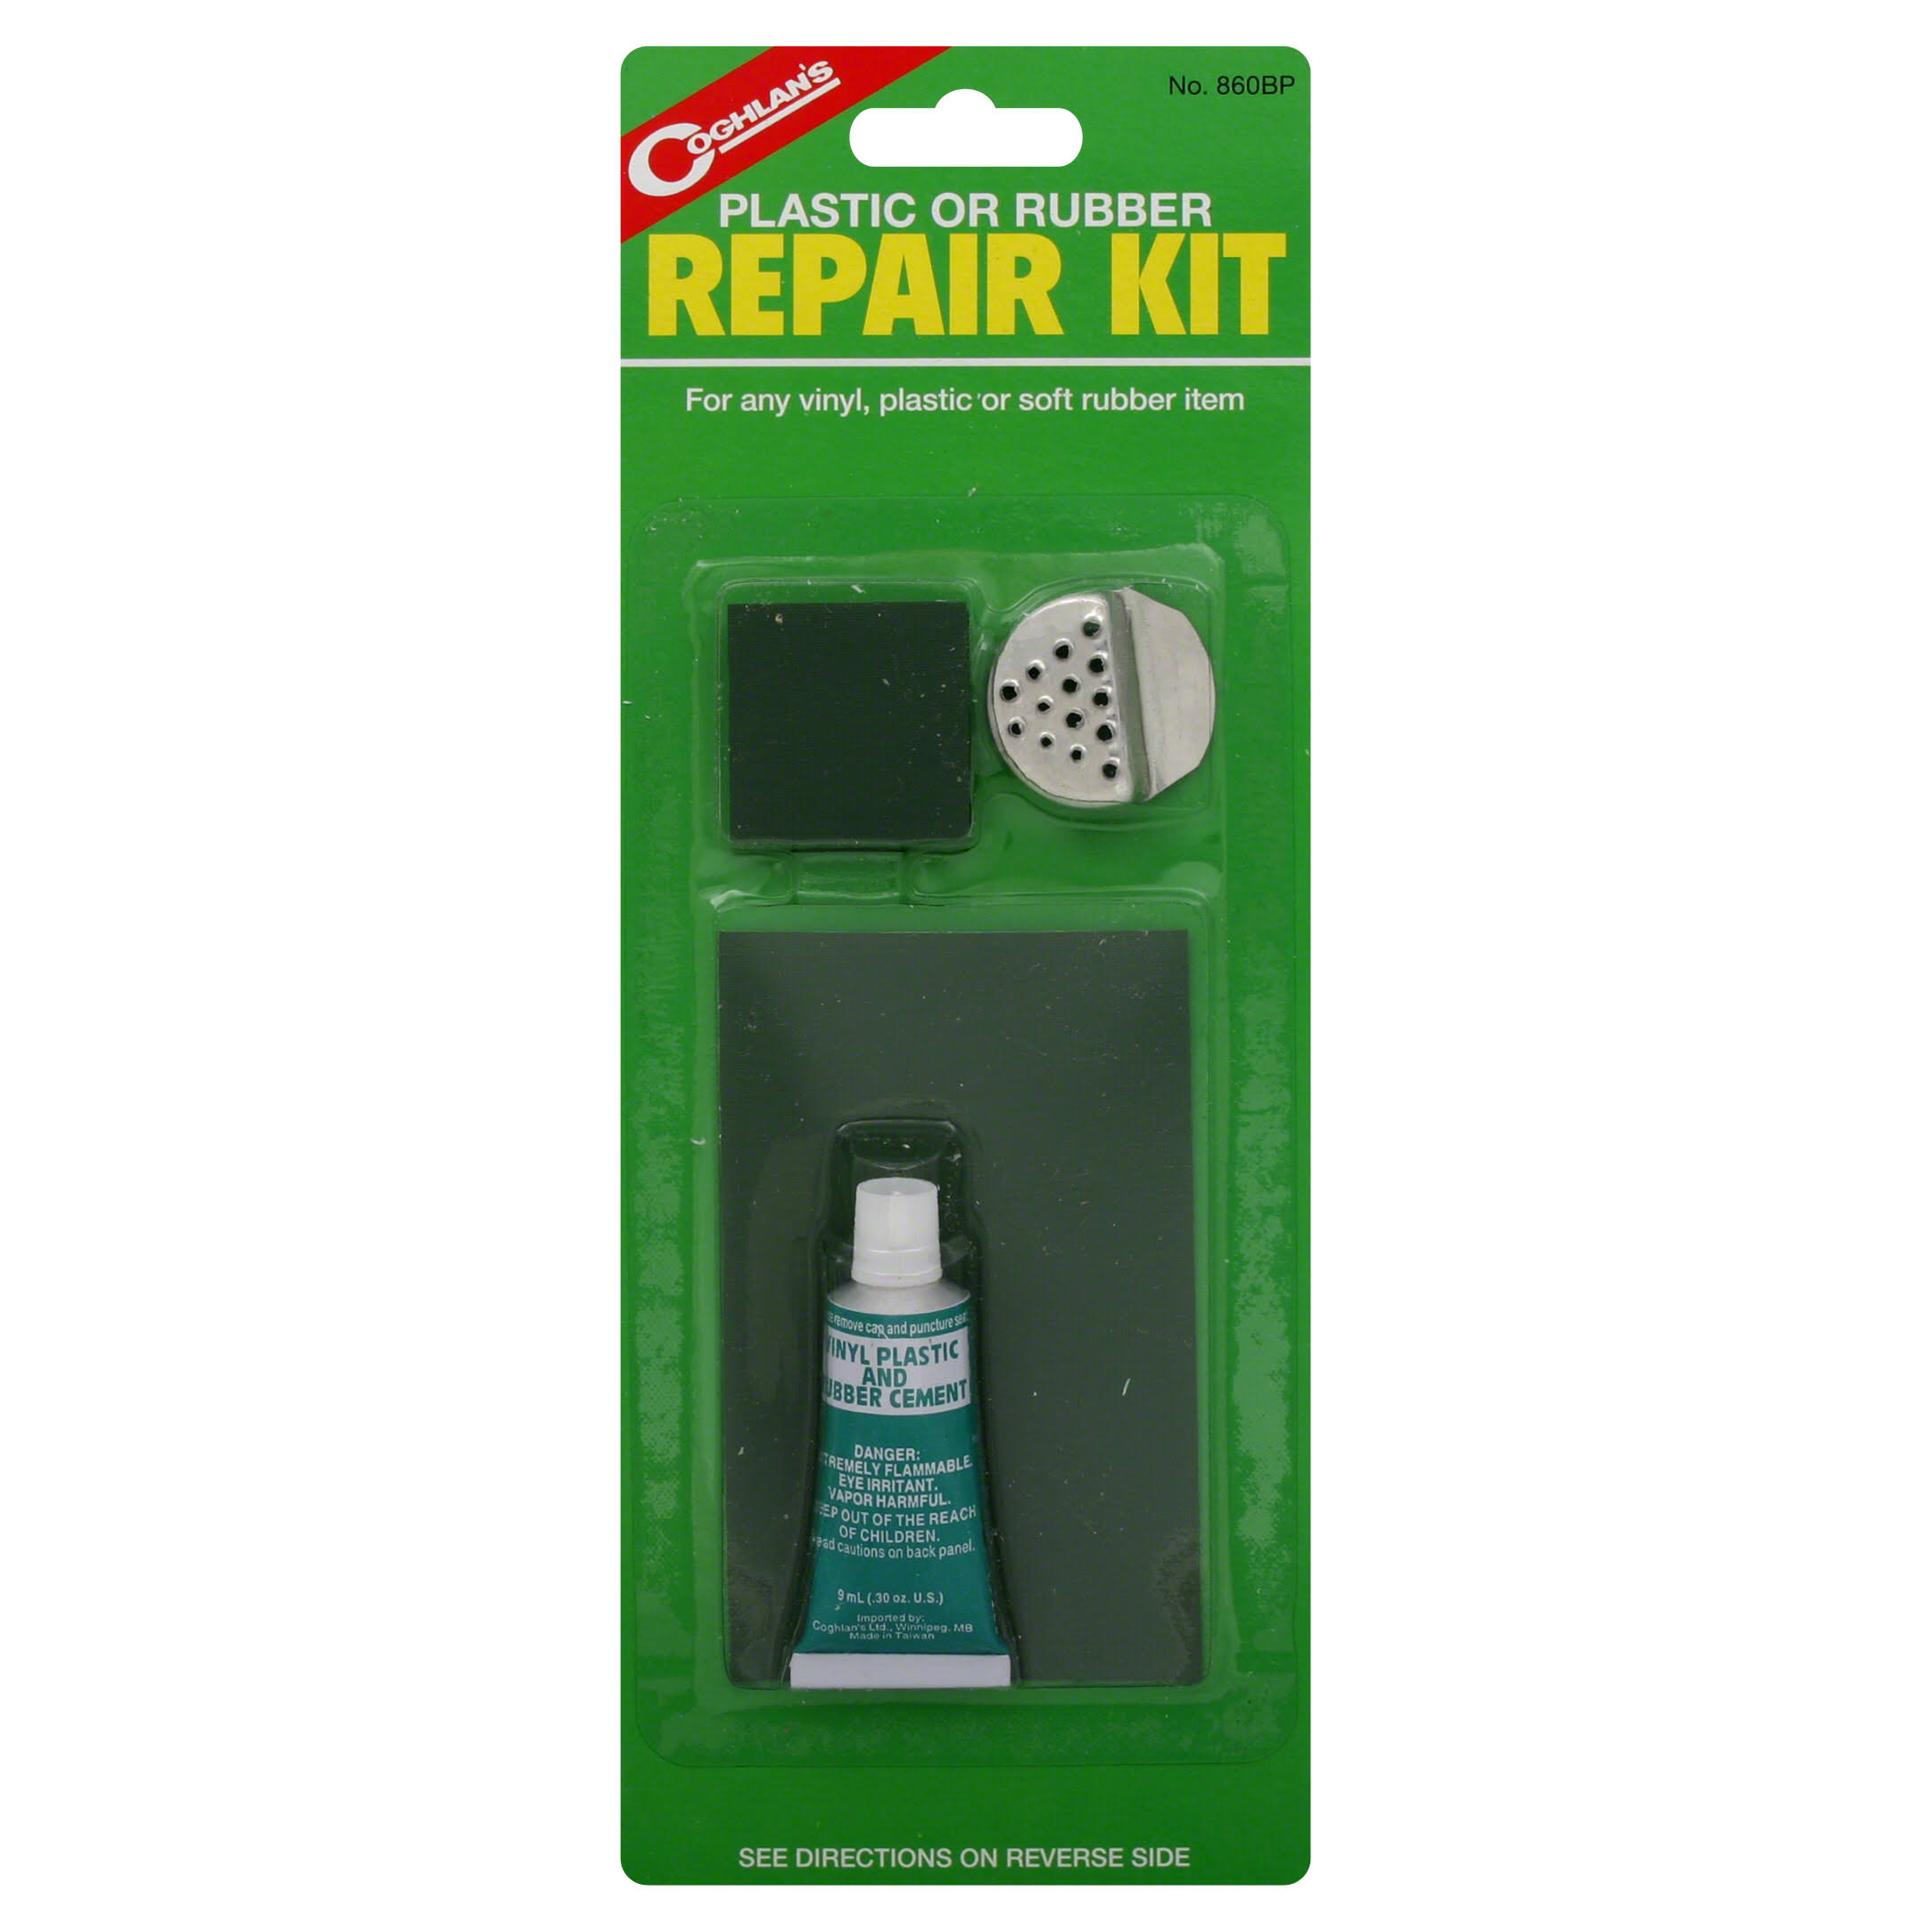 Coghlans 159206 Plastic of Rubber Repair Kit